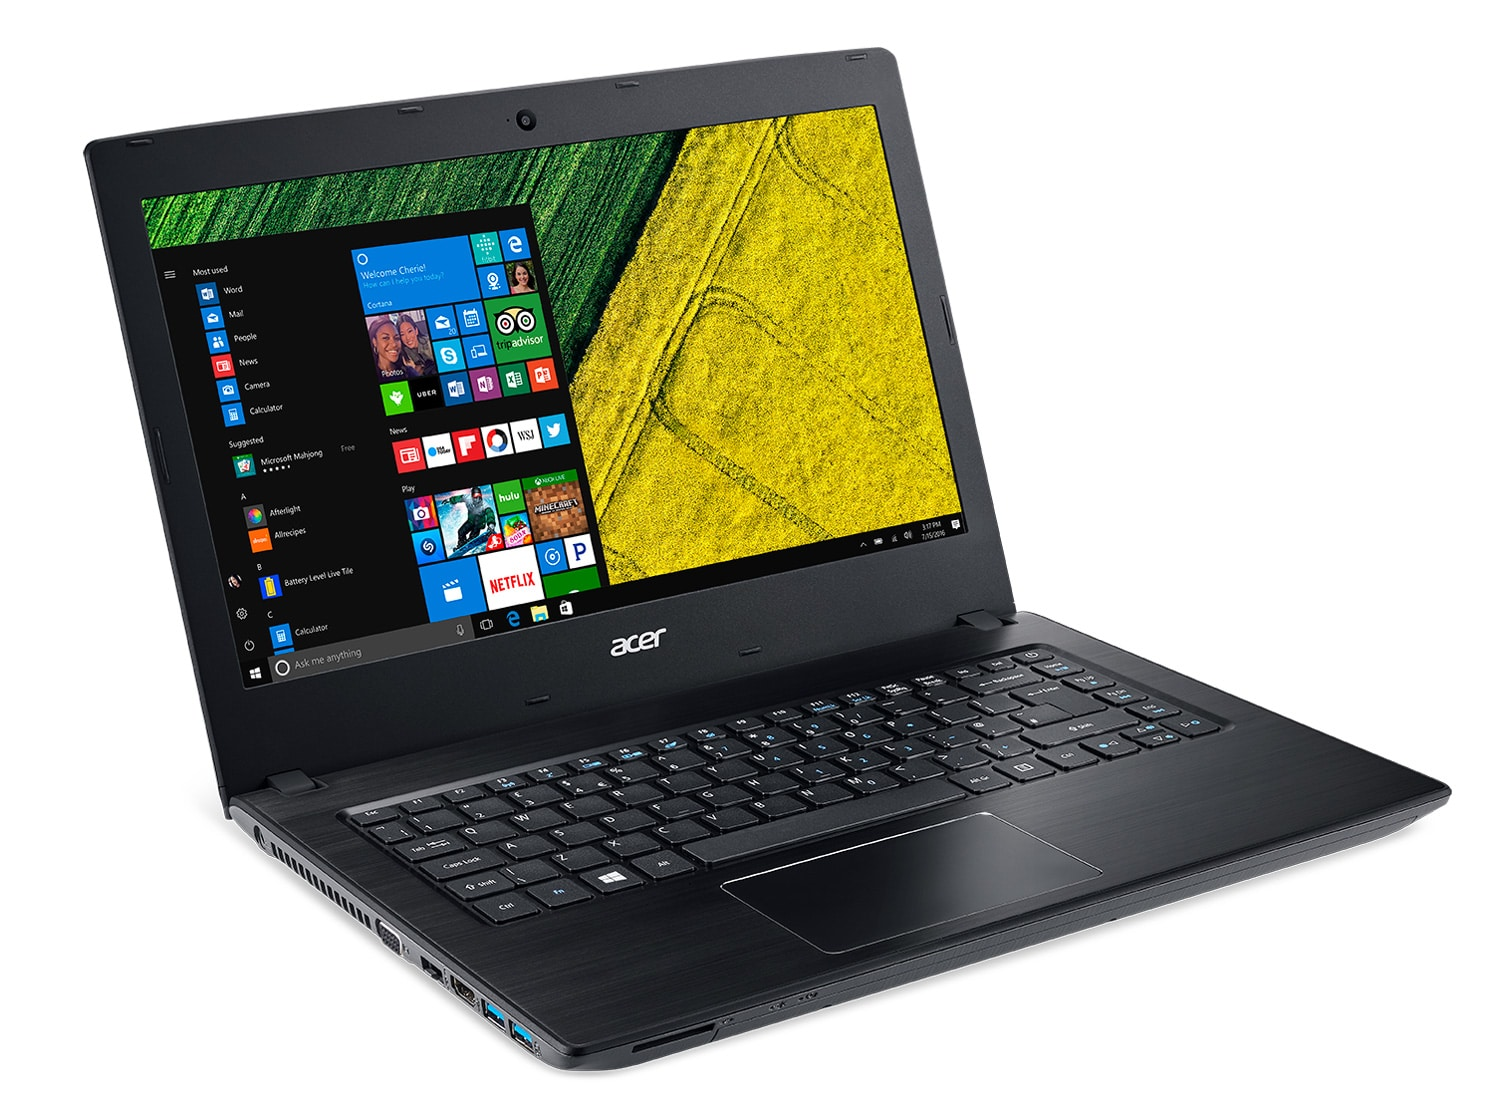 Acer Aspire E5-475-38XL, PC portable 14 pouces SSD+HDD i3 (449€)